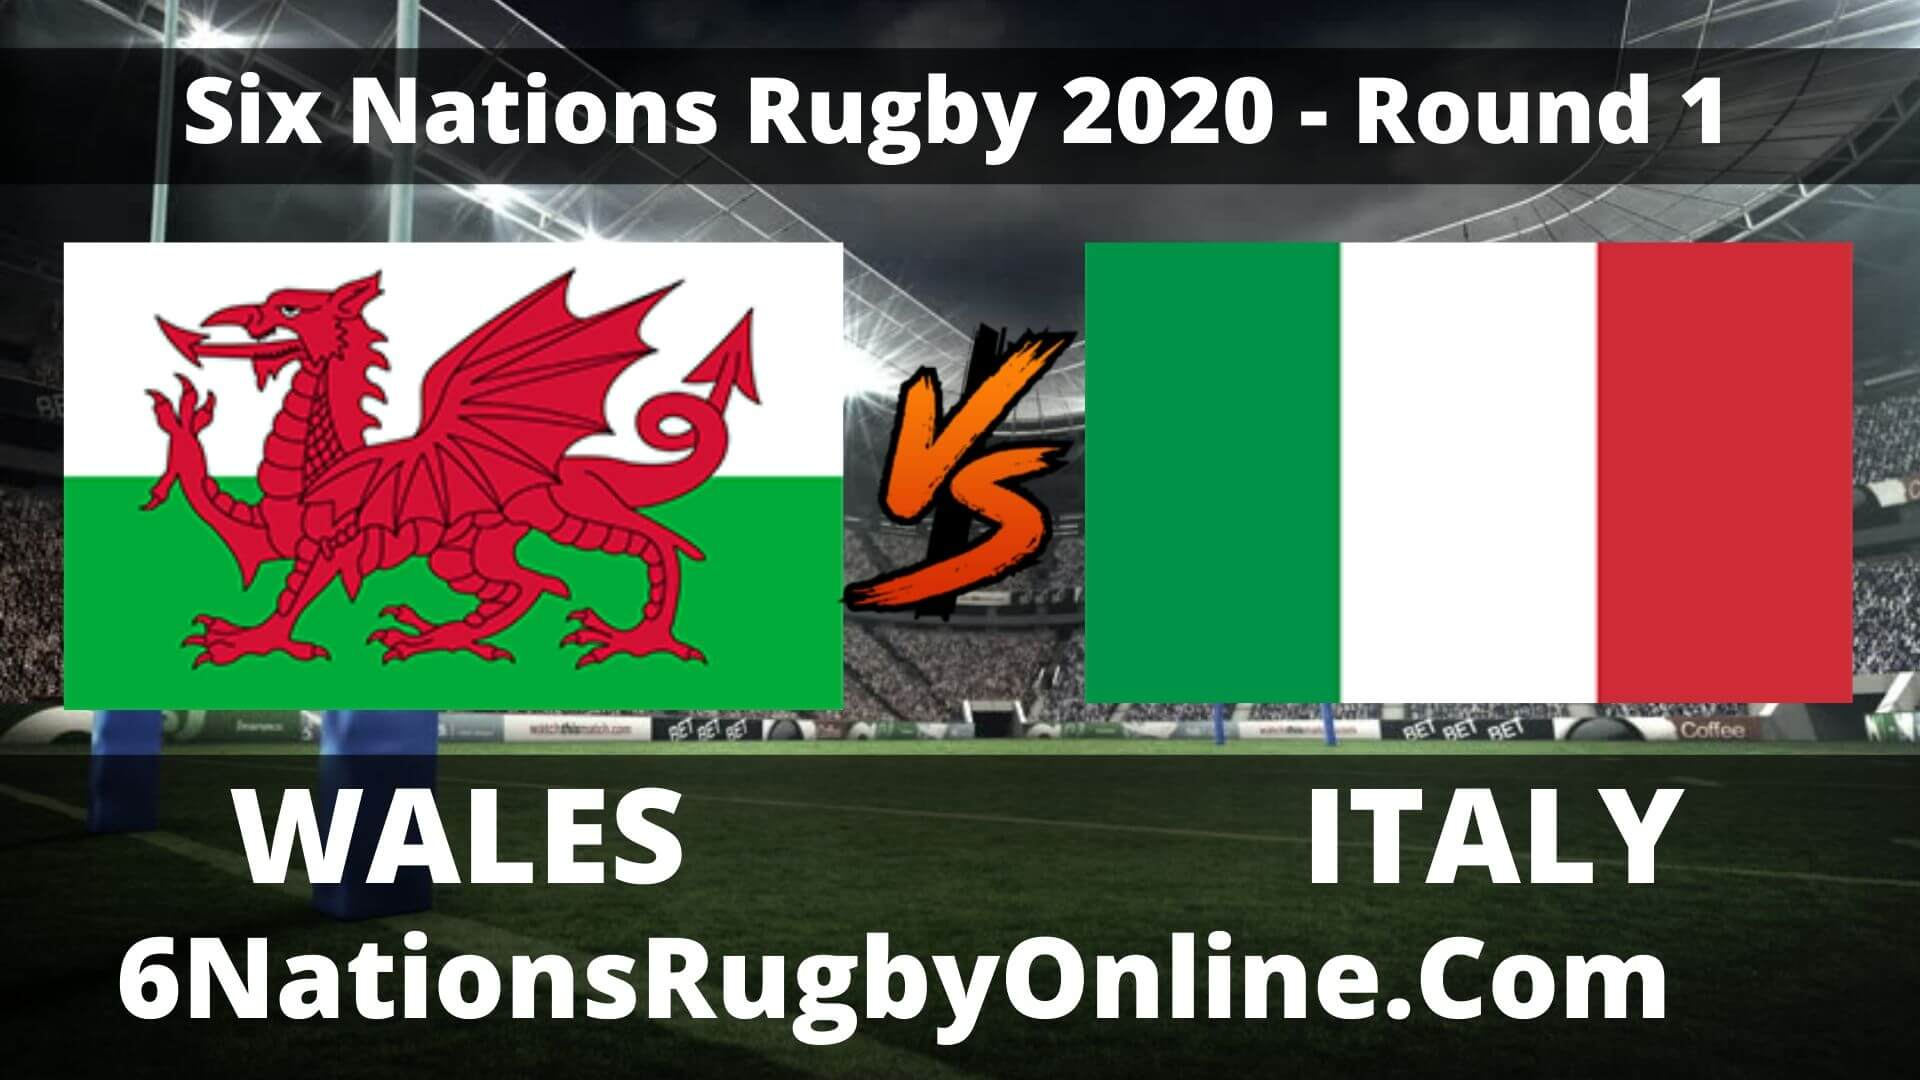 Wales vs Italy Live Stream 2020 Round 1 | Full Match Replay